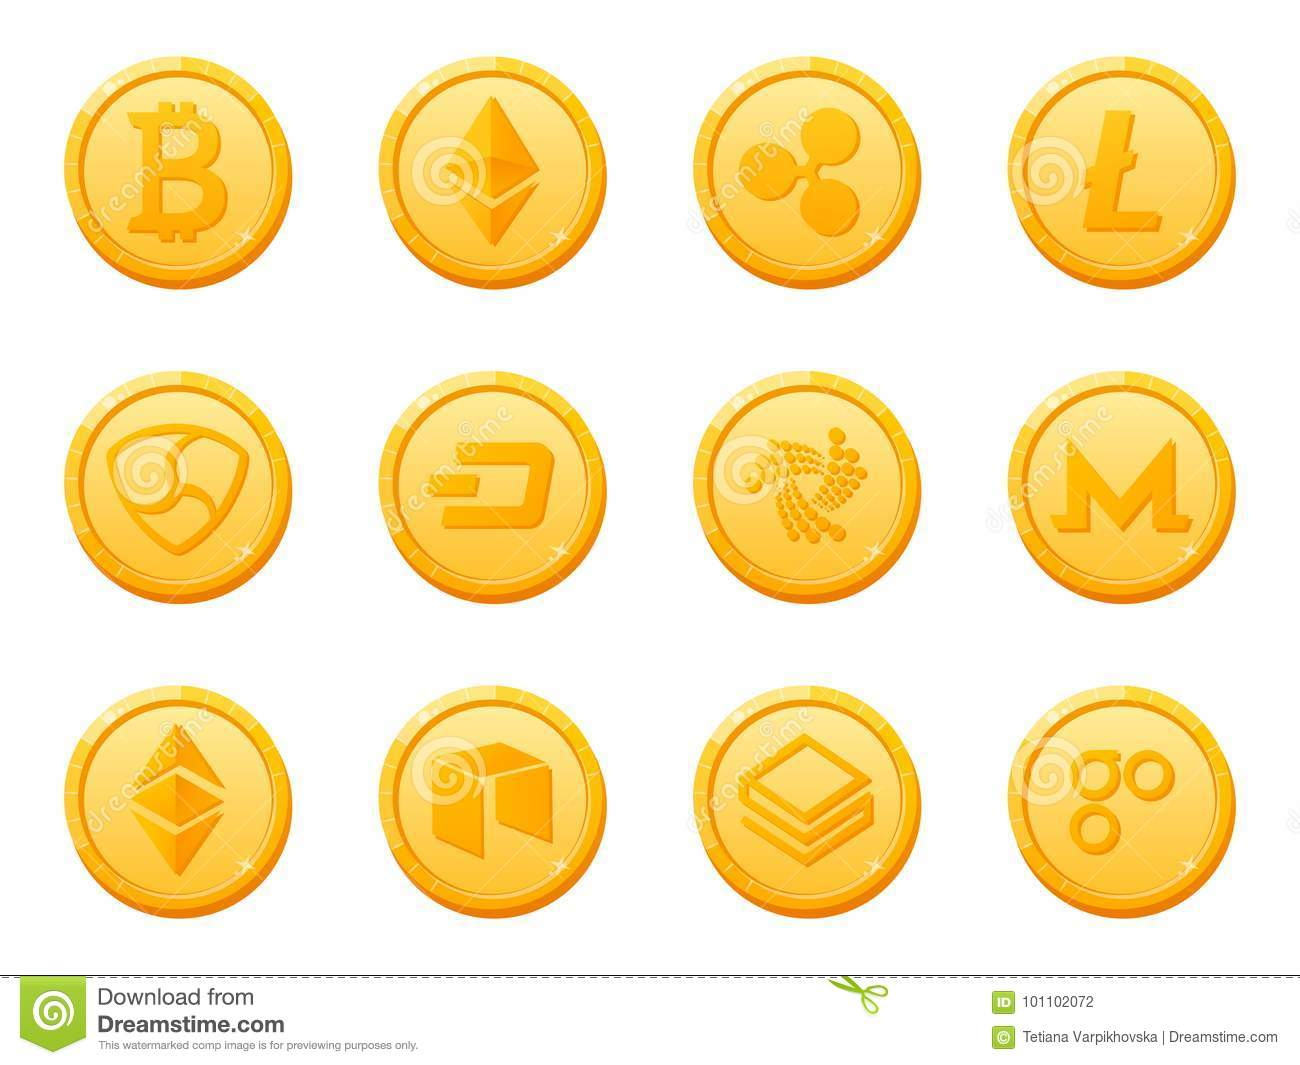 Set of 12 gold coins crypto currency icon. Top digital electronic currency by market capitalization.